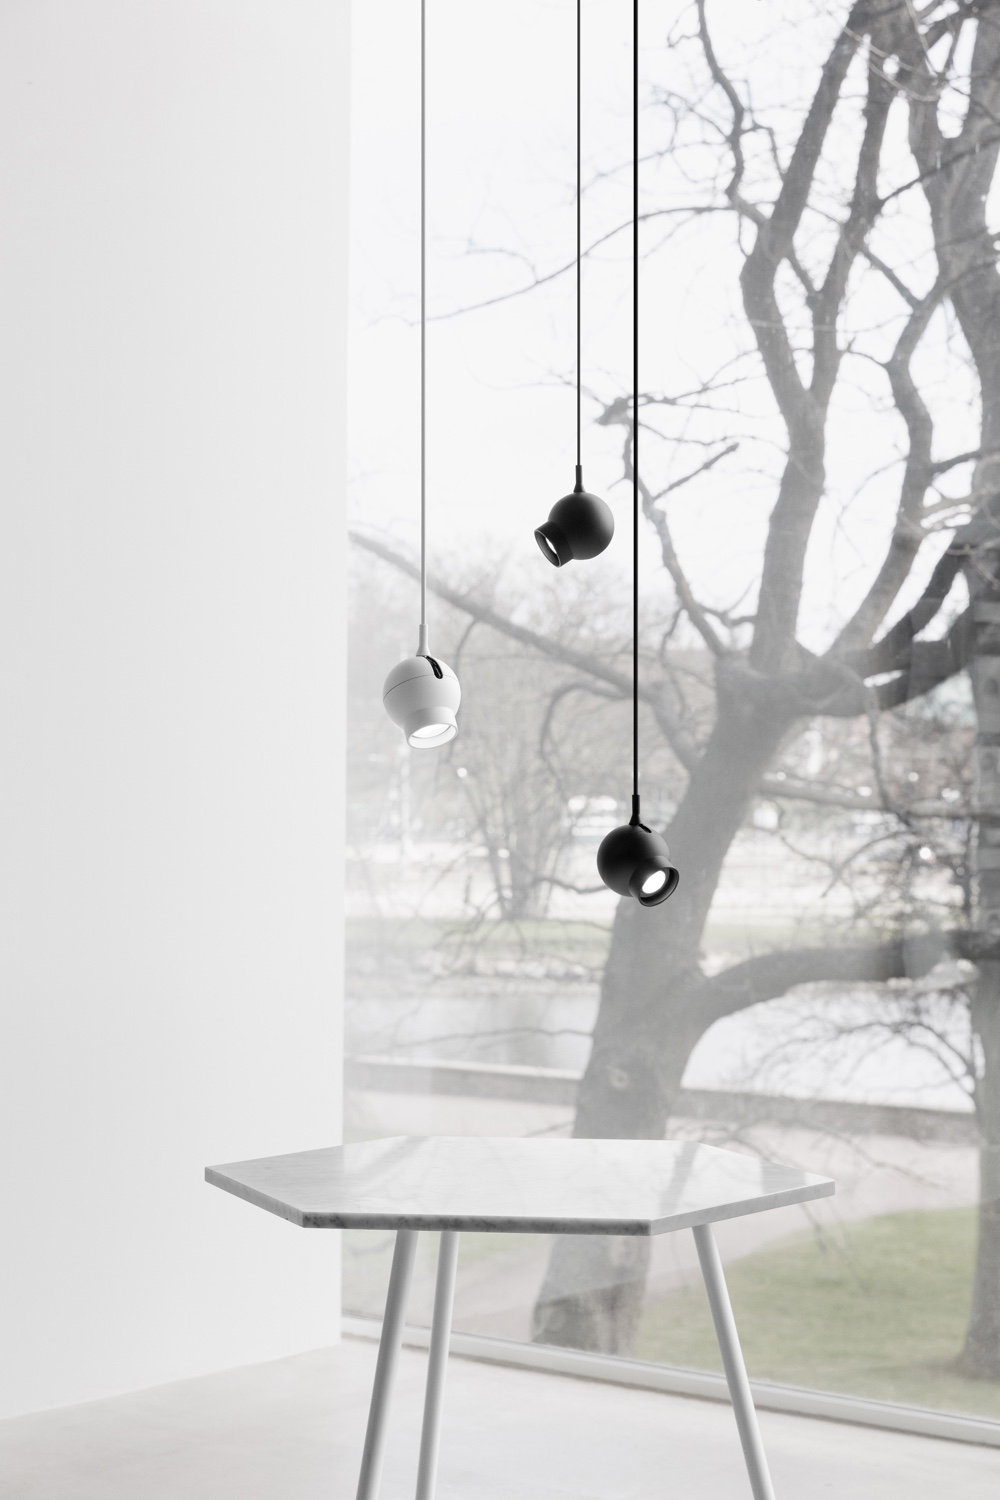 Ogle Mini cluster (black and white) by Form Us With Love for ateljé Lyktan. Image courtesy ofateljé Lyktan.